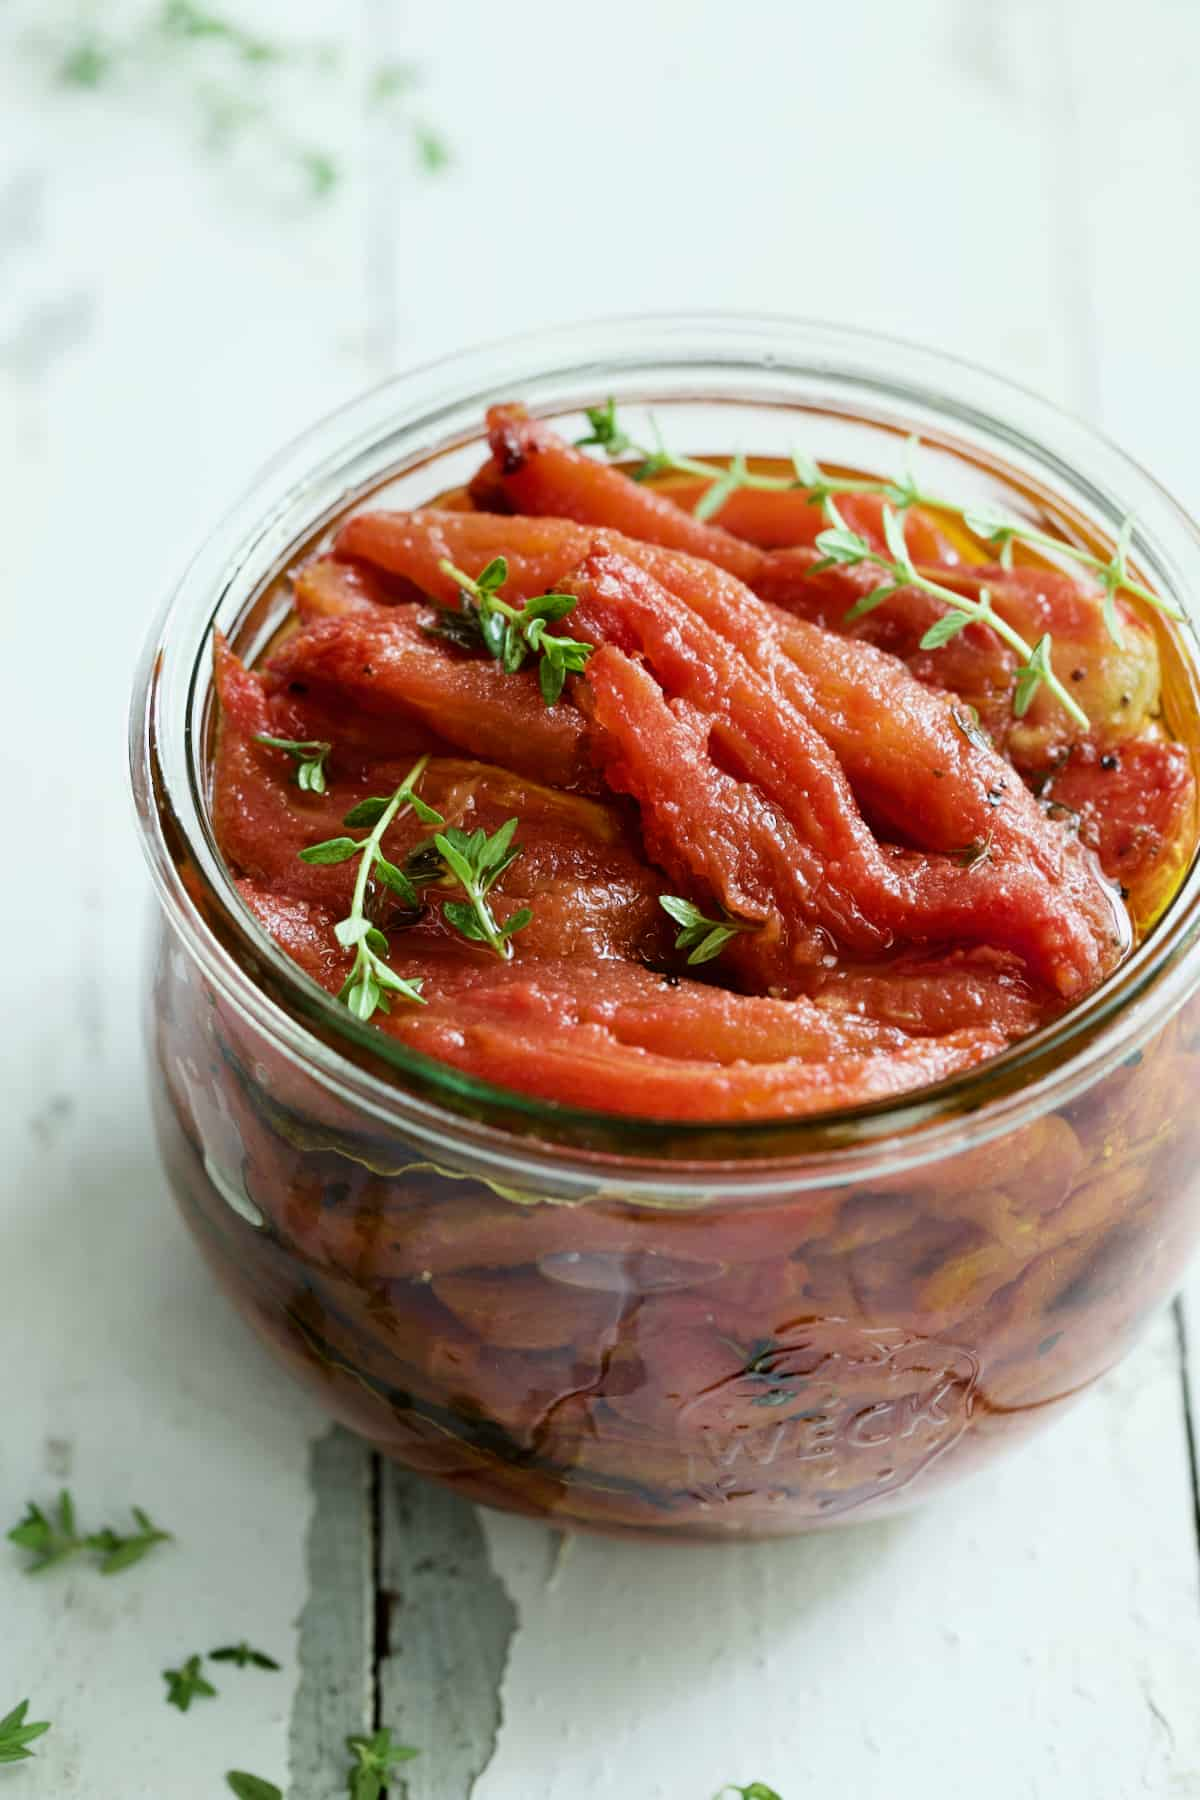 Tomato Confit in glass jar garnished with fresh thyme sprigs on white distressed background.